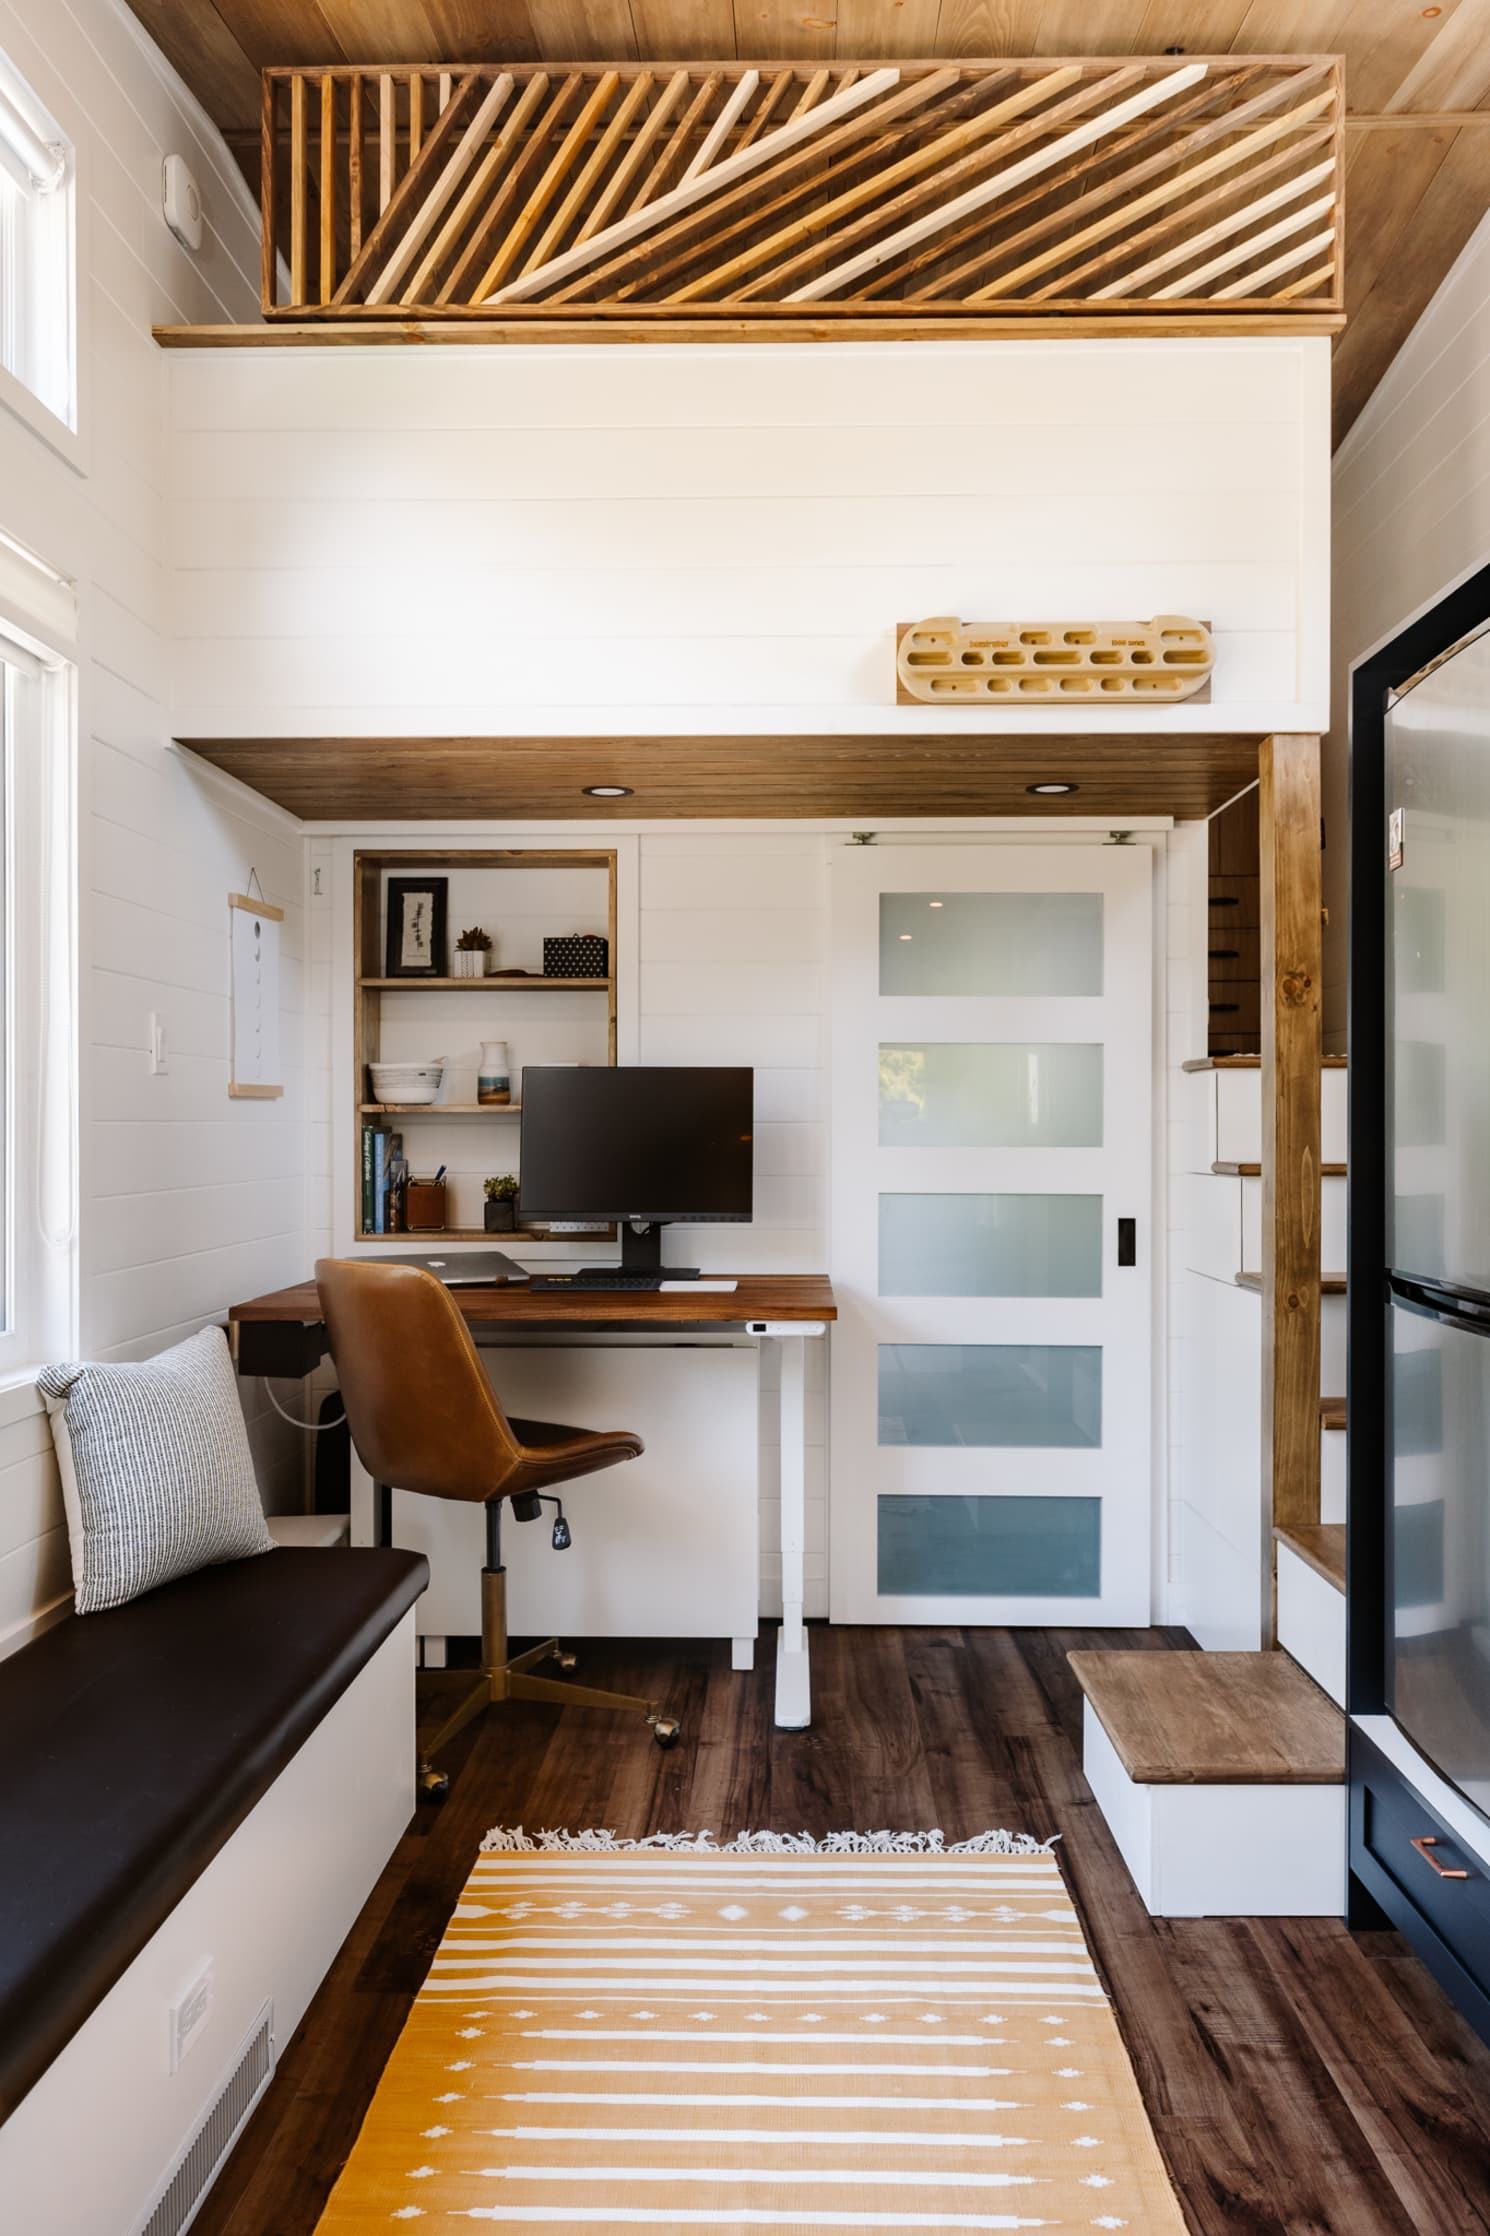 Smart tiny home with office space and wooden flooring